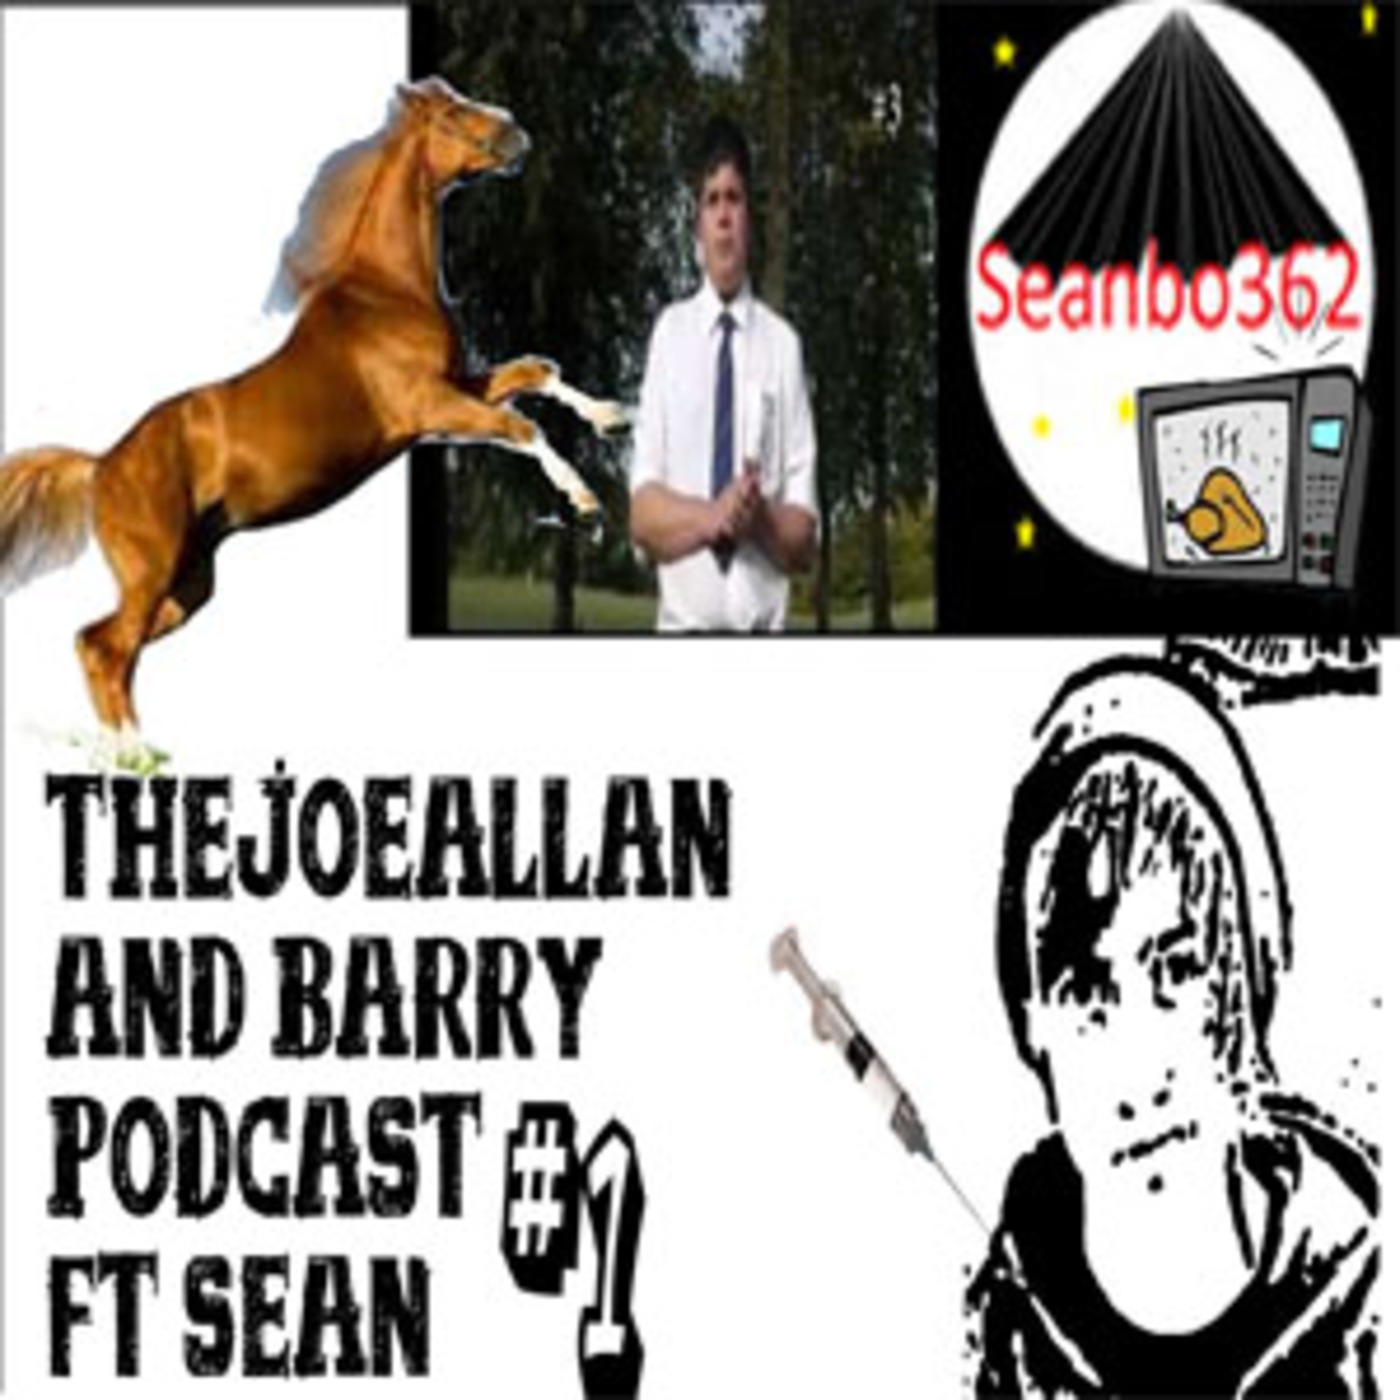 thejoeallan and barrys podcast #1